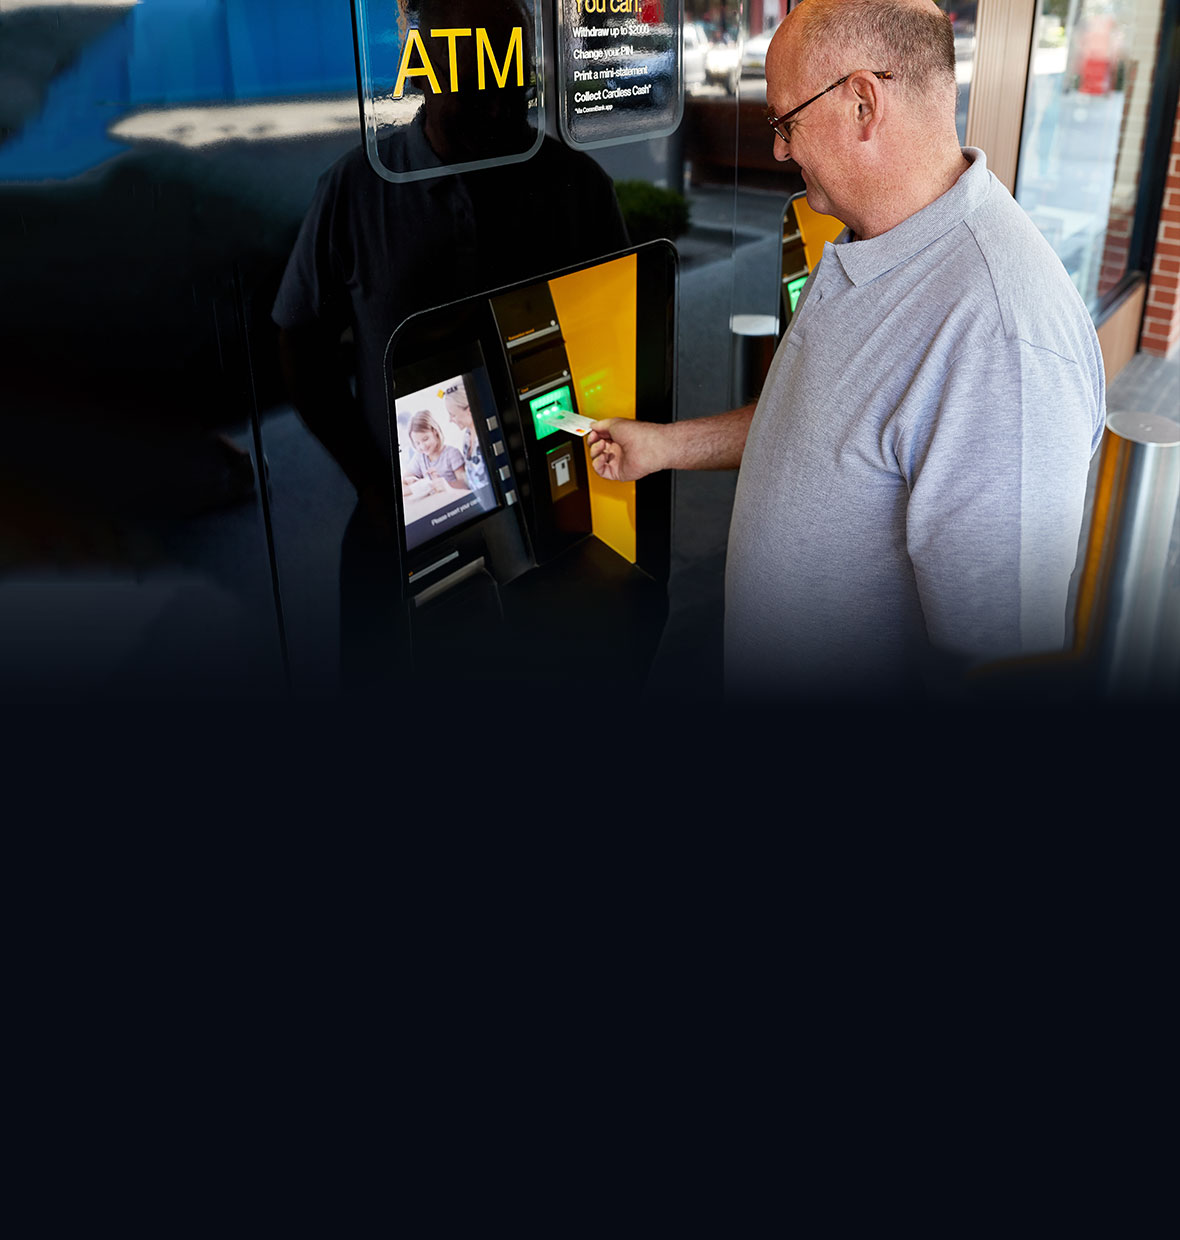 Man at CommBank ATM